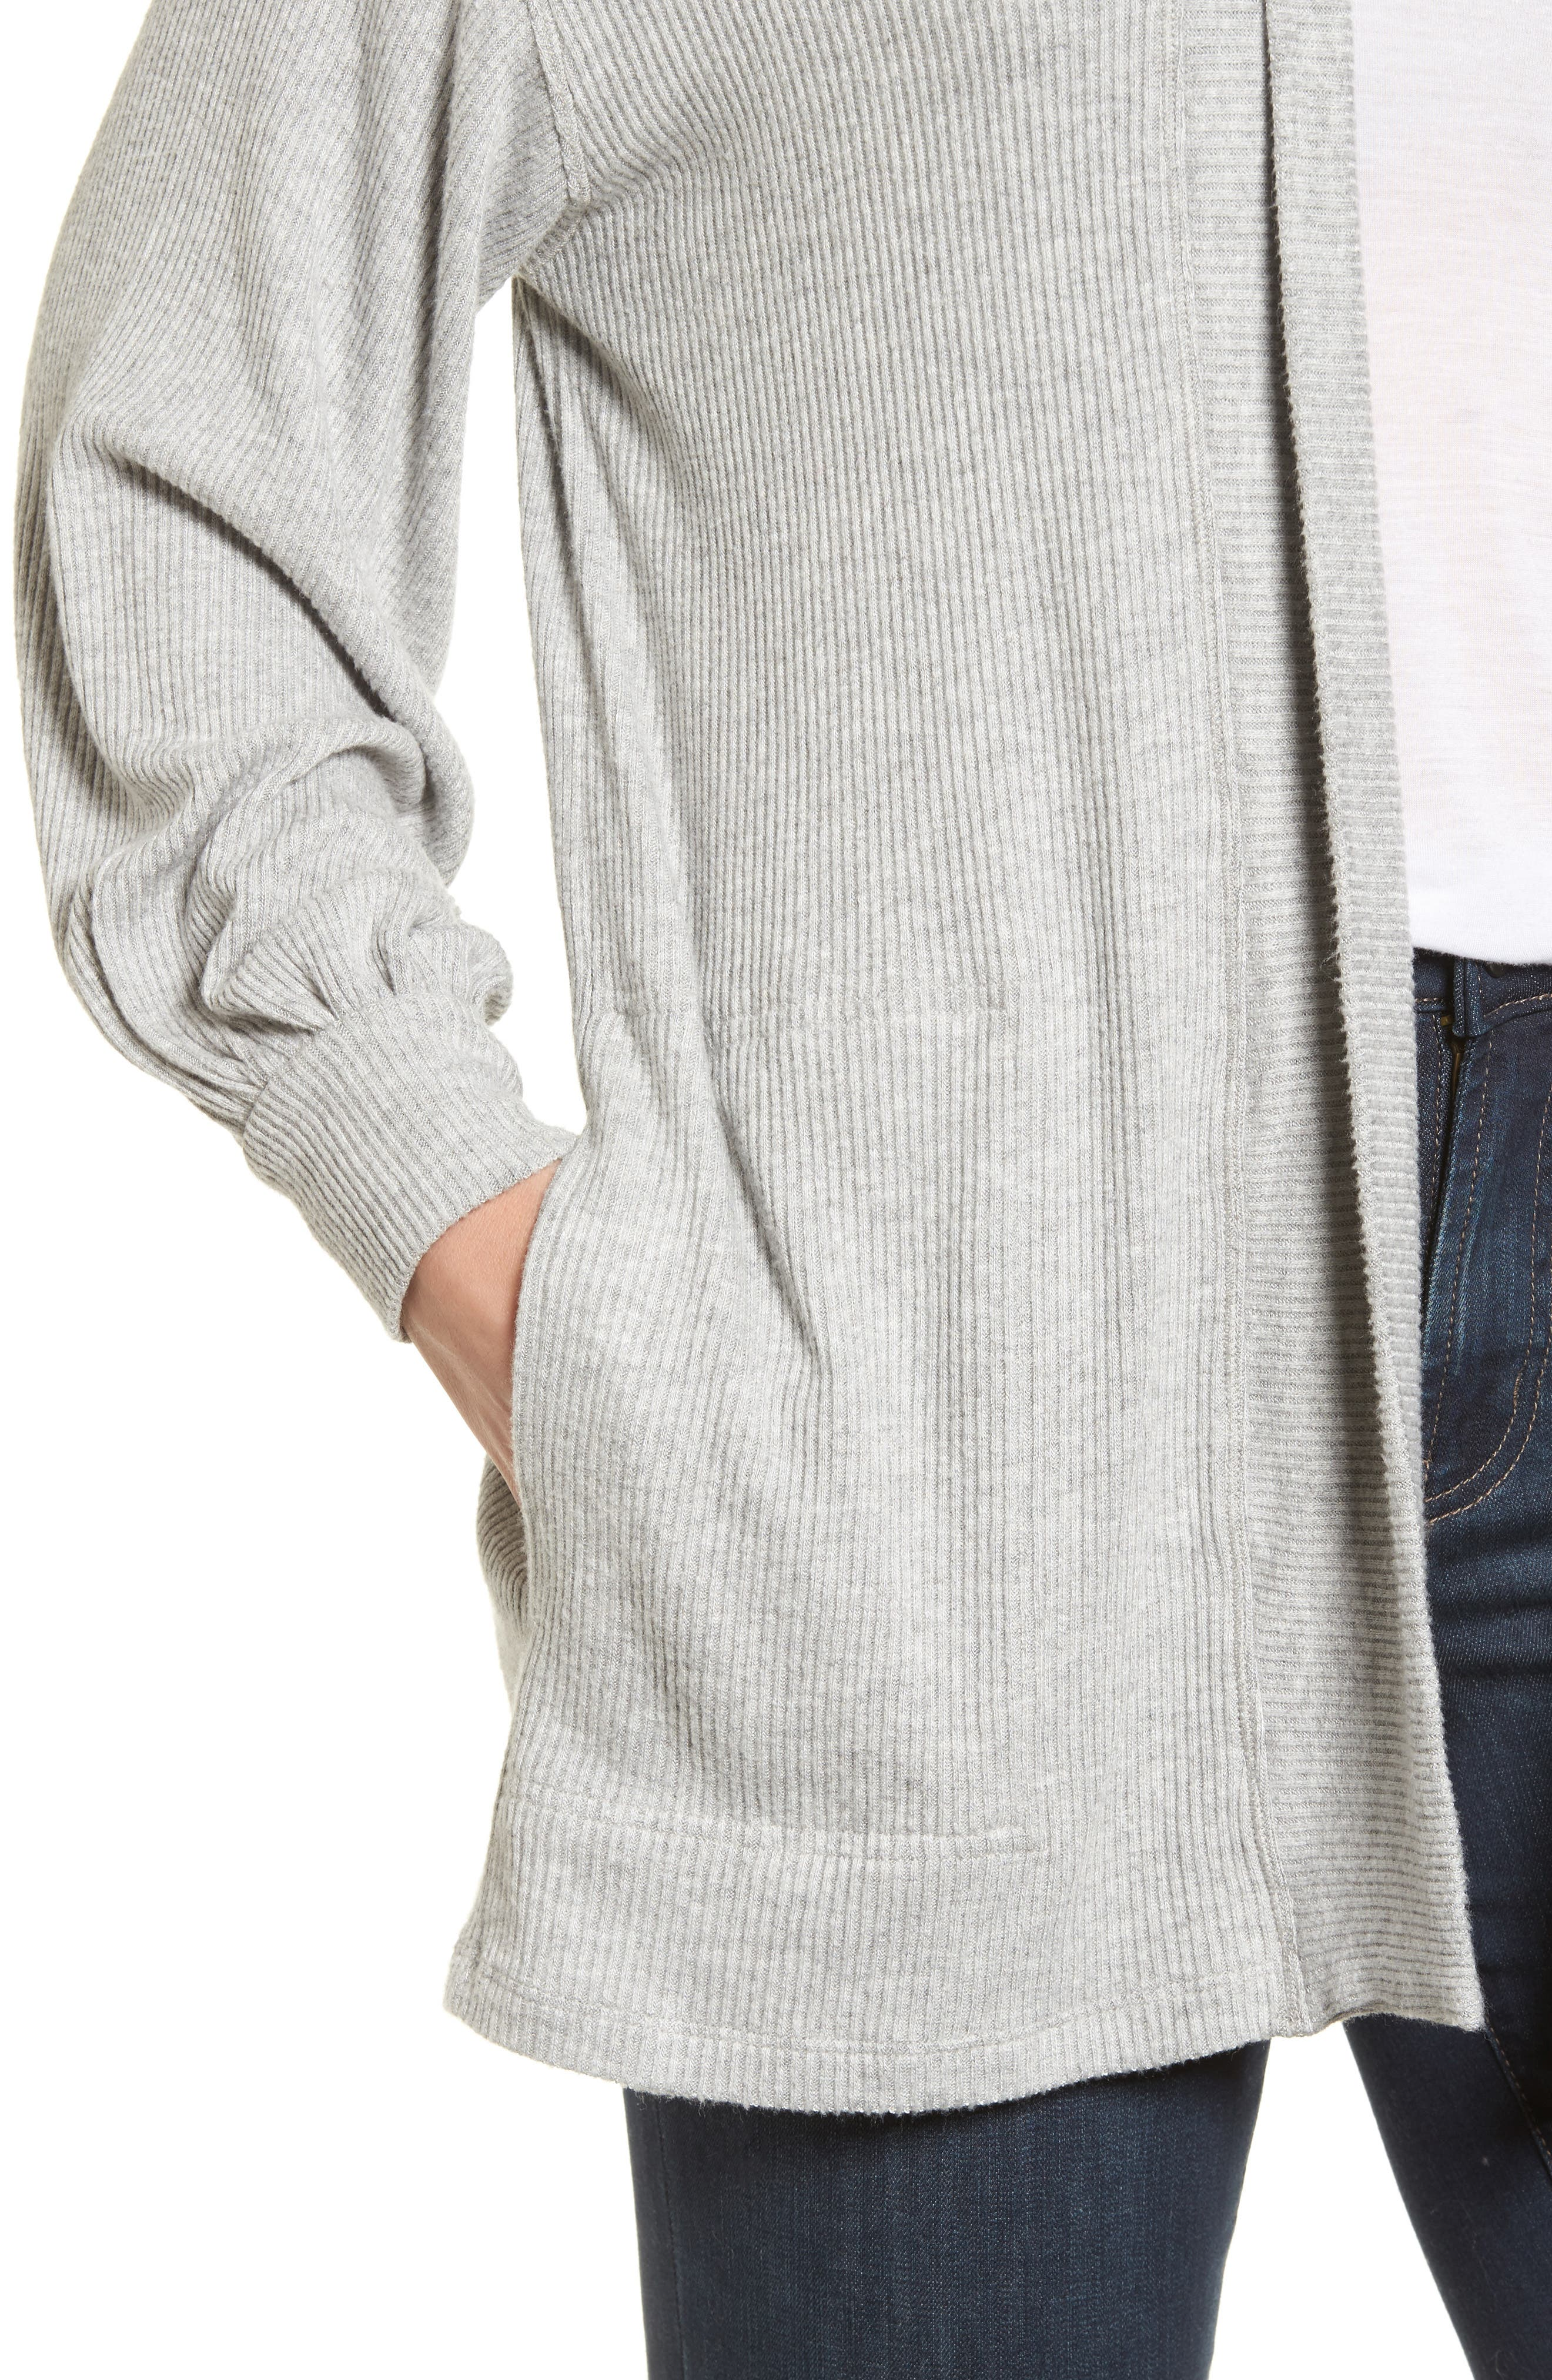 Ribbed Blouson Sleeve Cardigan,                             Alternate thumbnail 4, color,                             Heather Grey